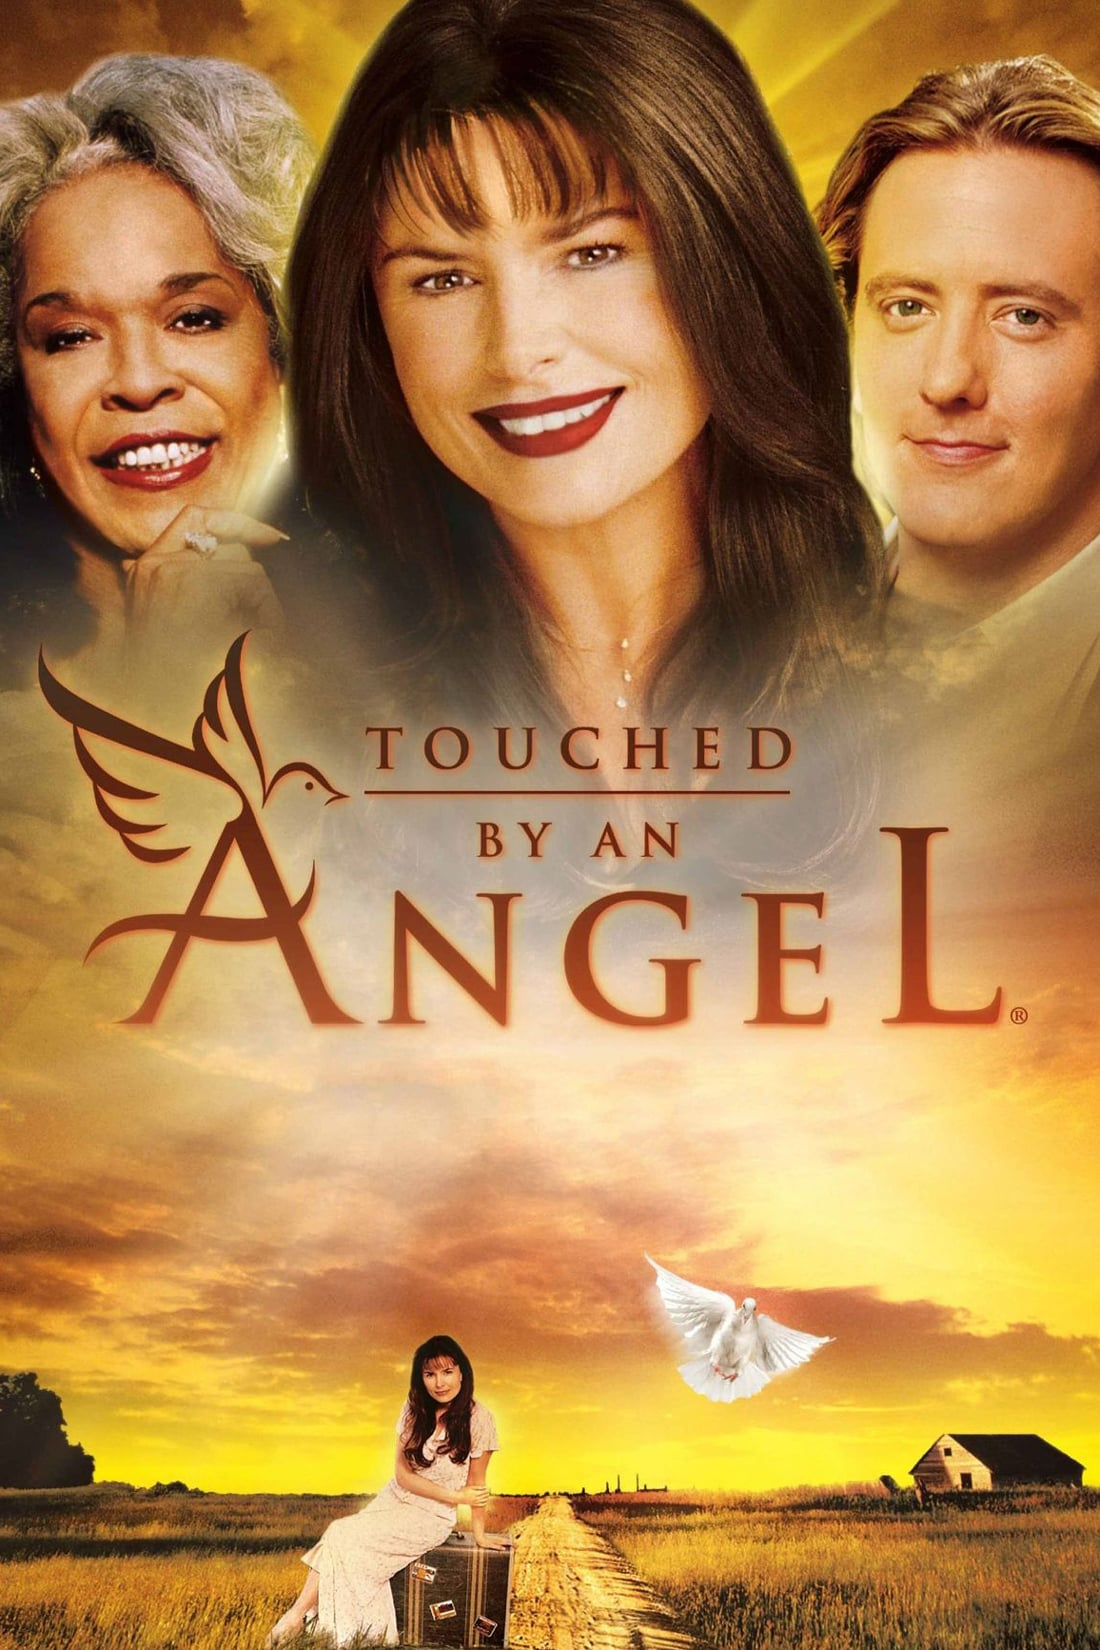 Touched by an Angel Serie Completa Ingles